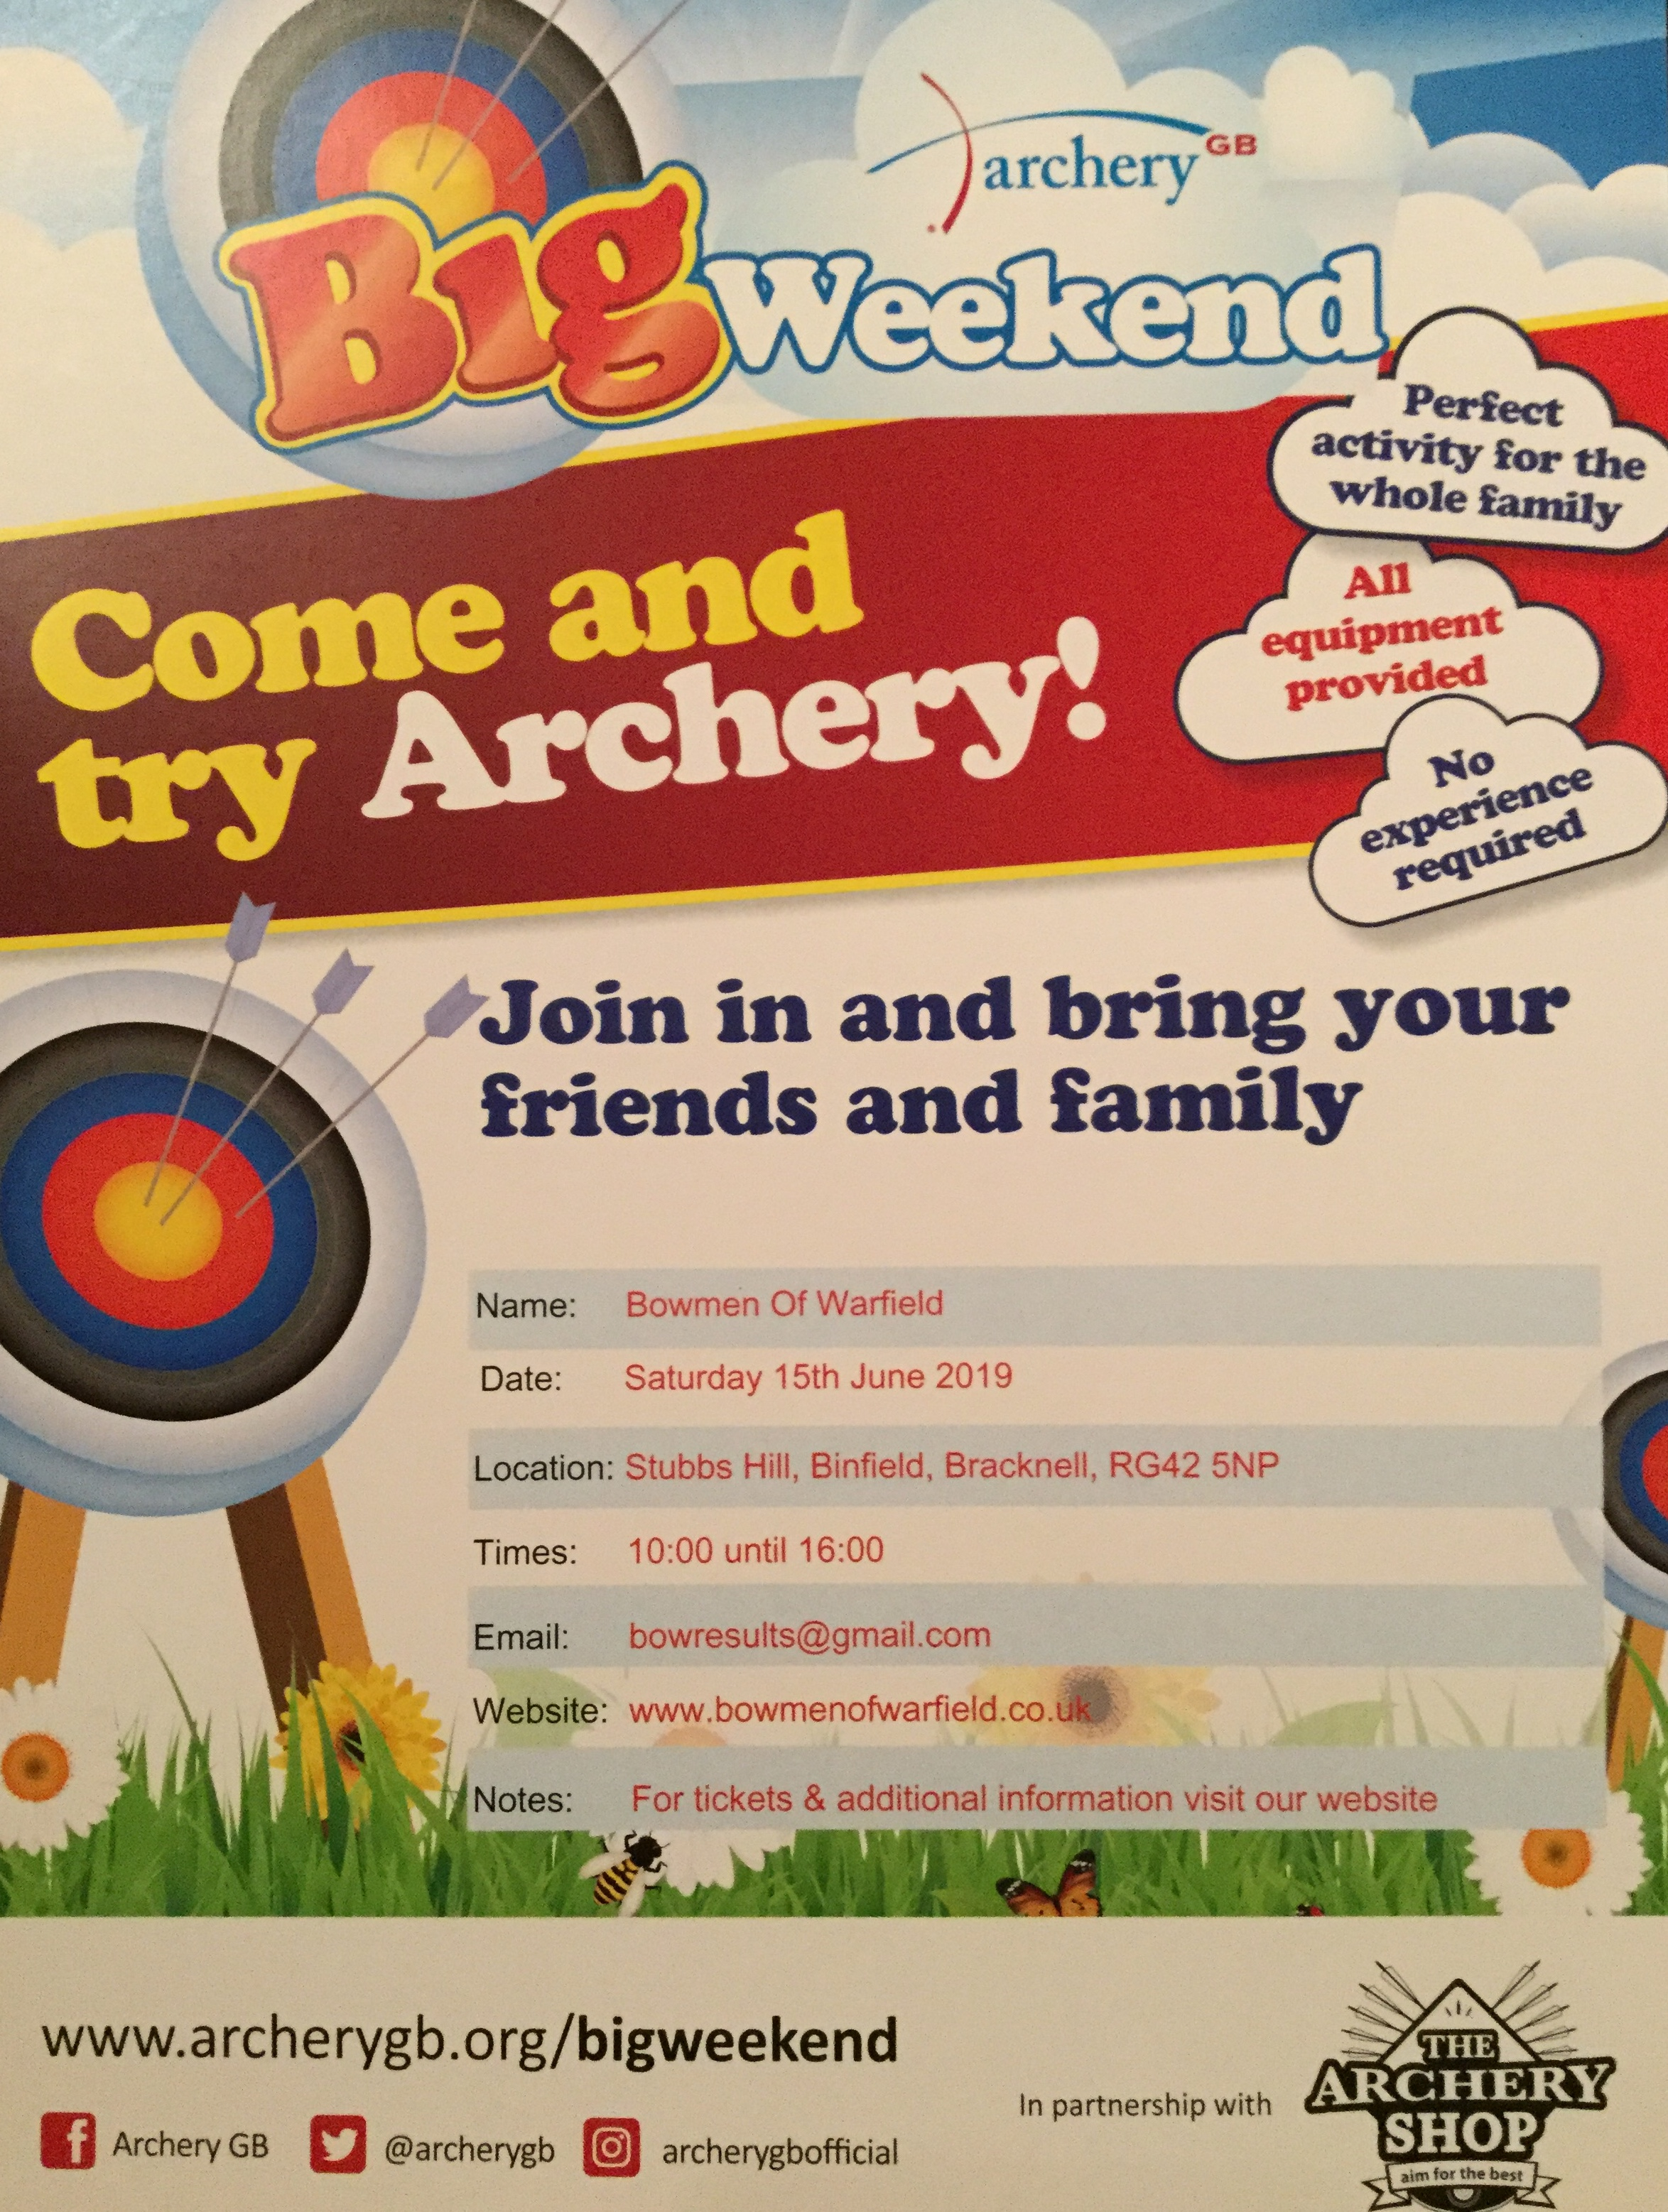 Big Weekend - Come And try archery